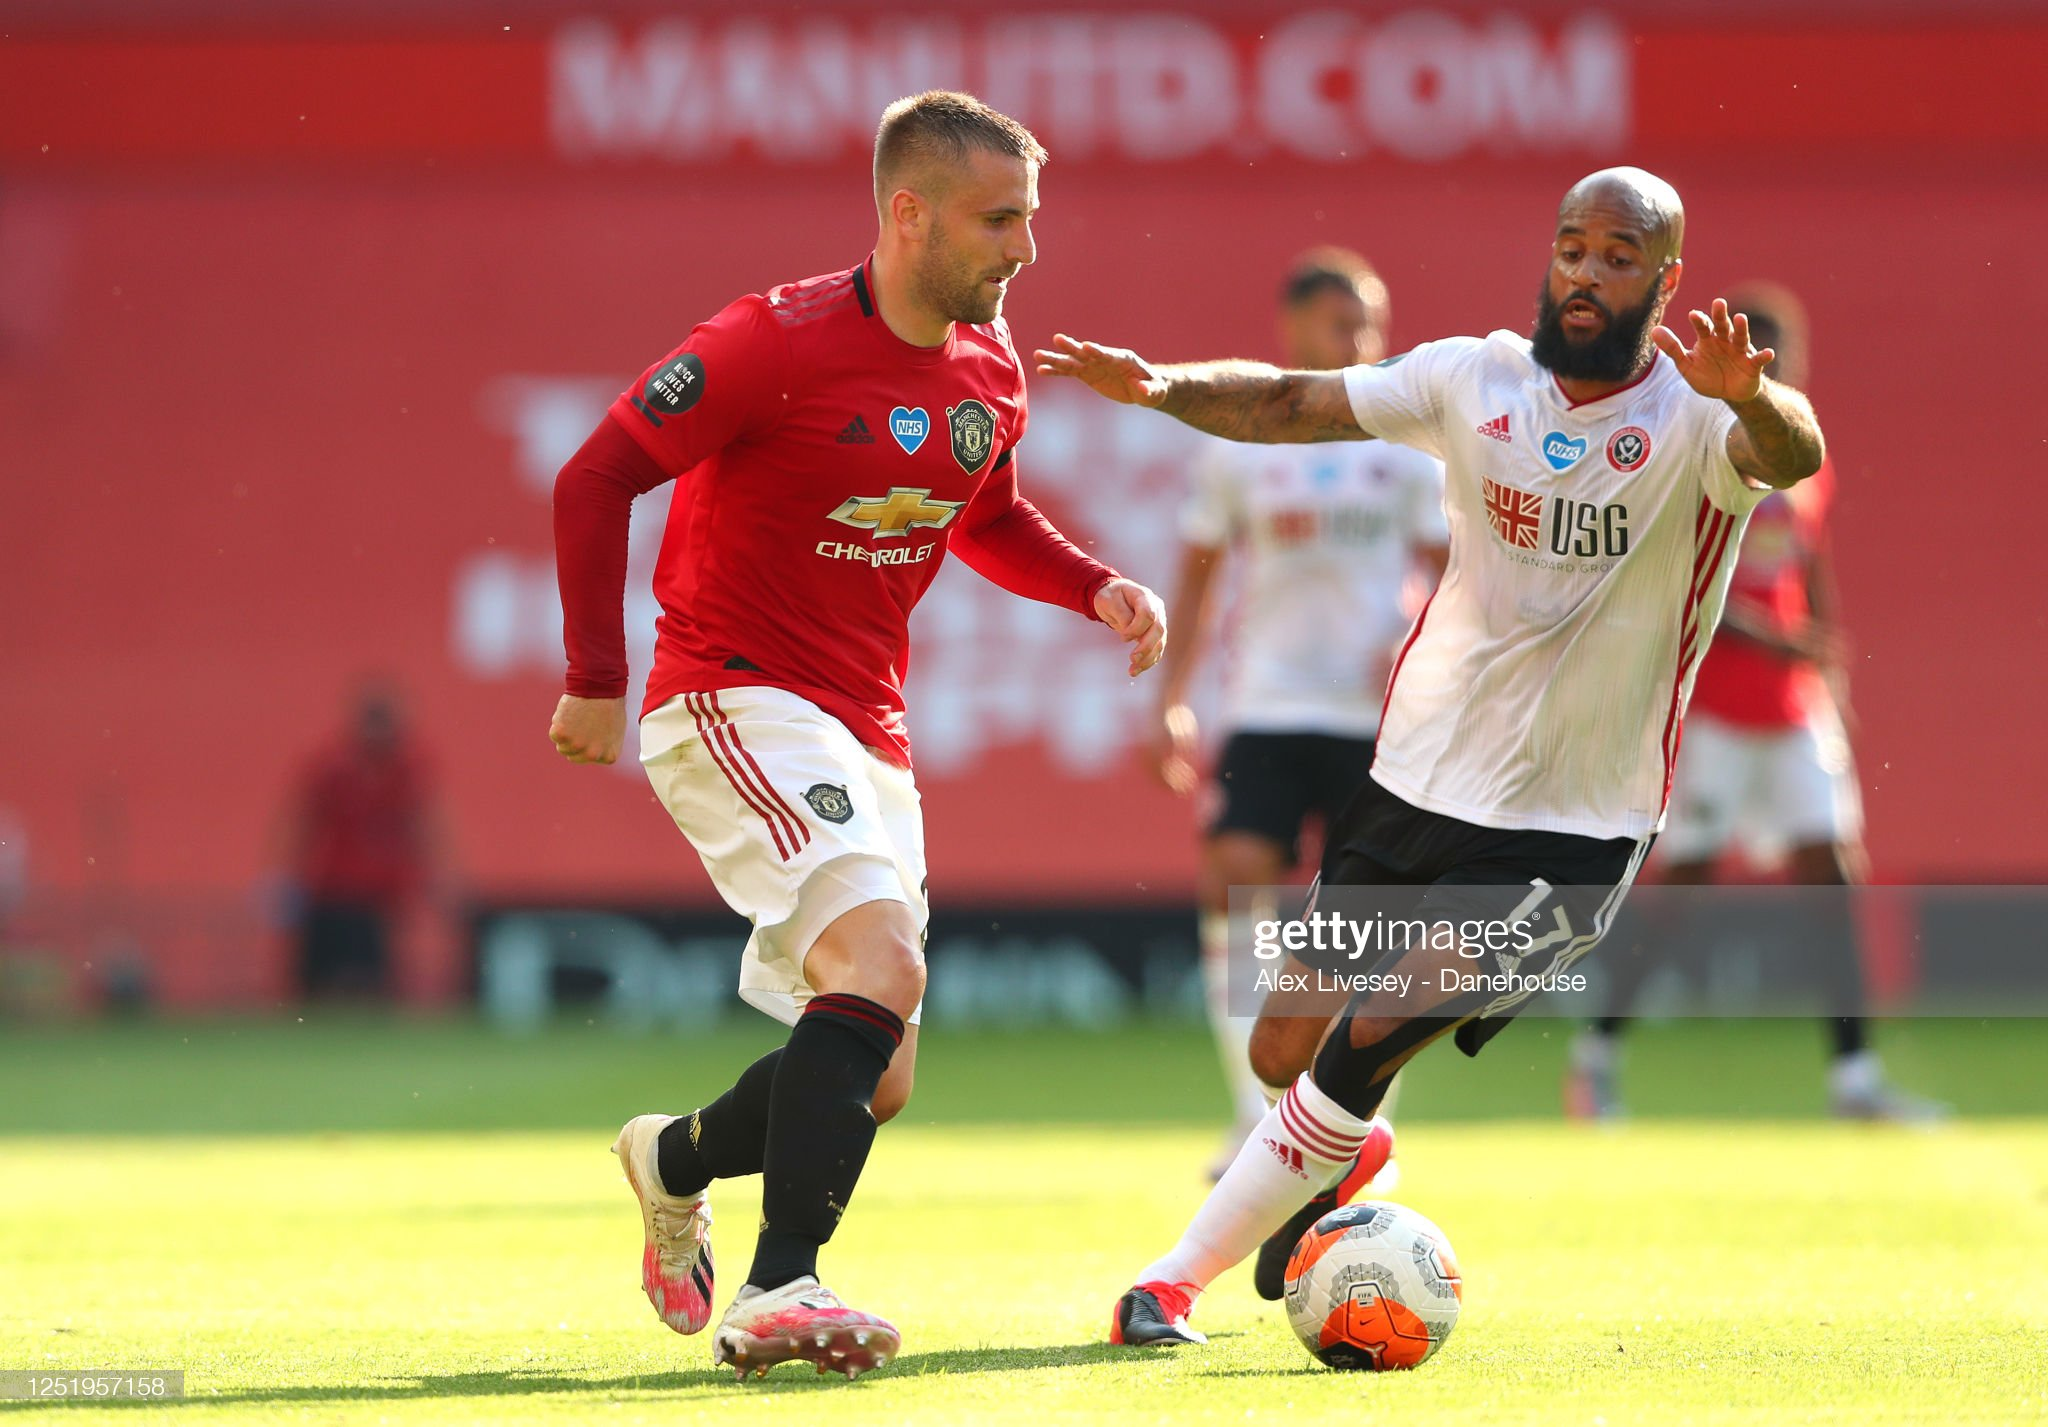 Sheffield United vs Manchester United preview, prediction and odds